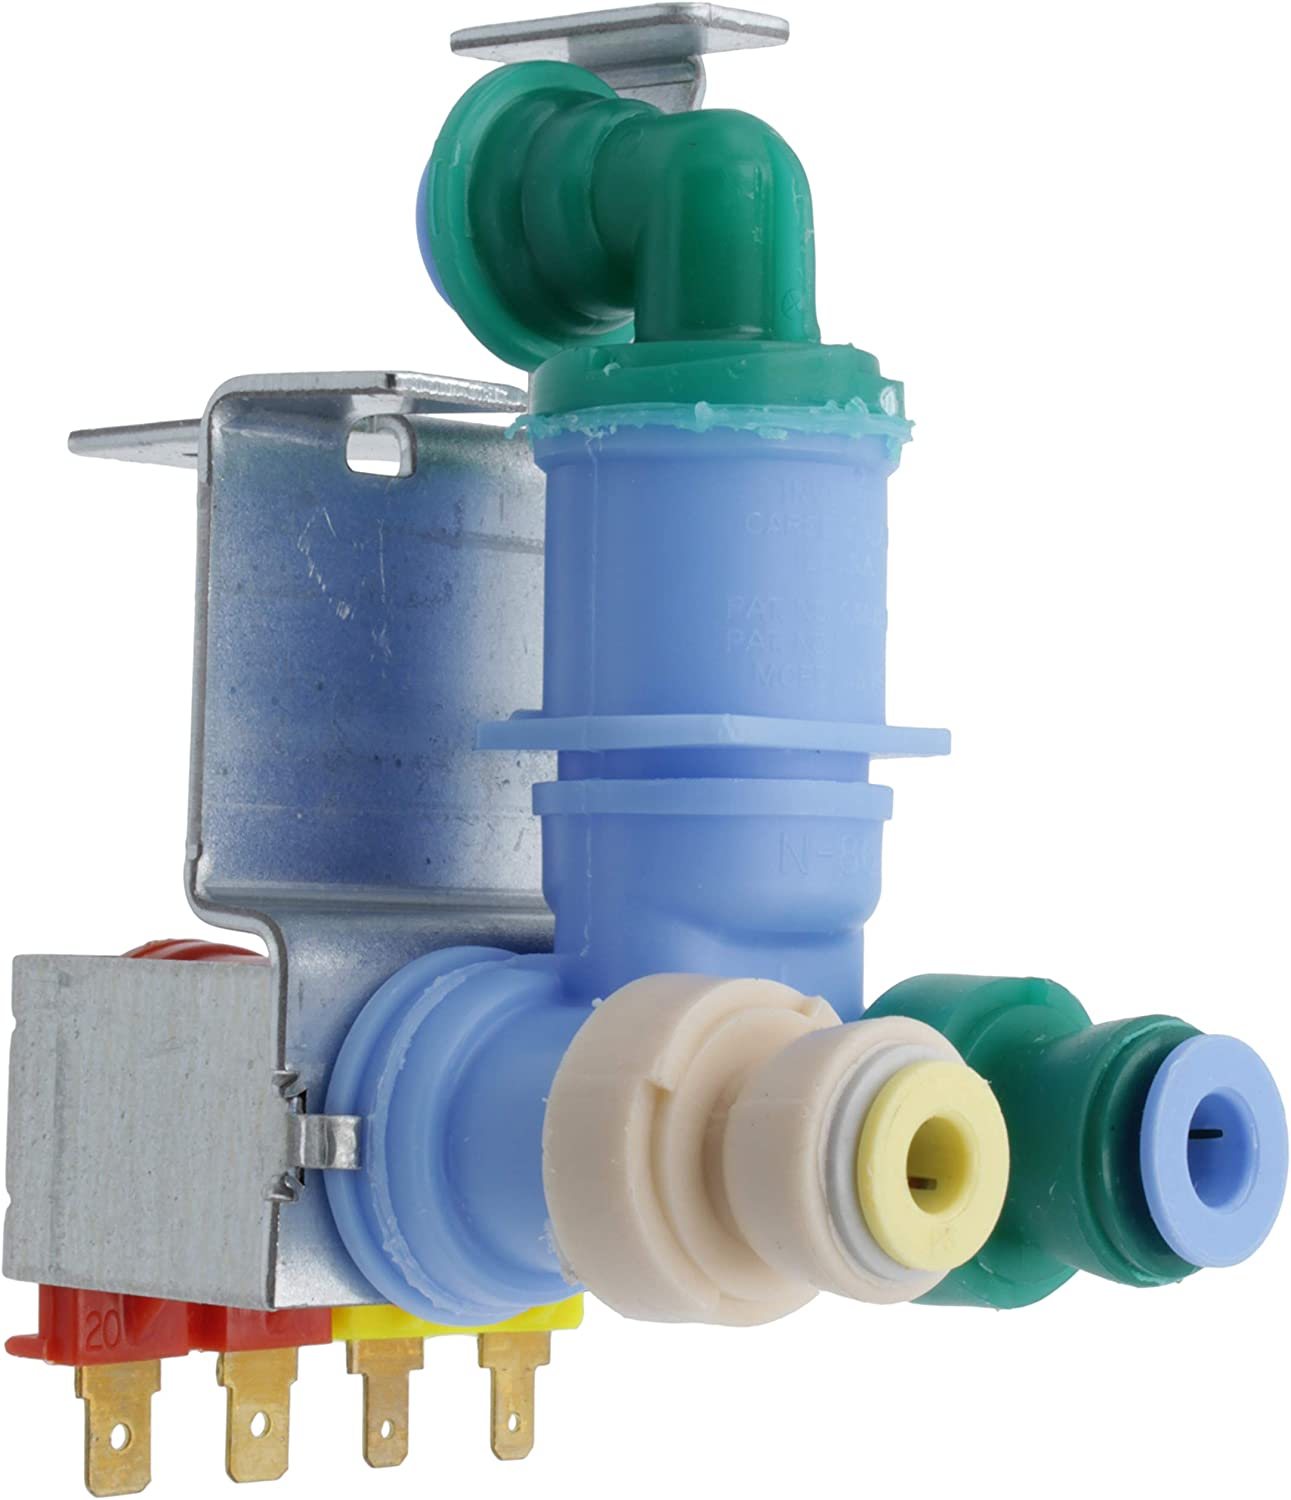 Supplying Demand W10420083 Refrigerator Water Valve Dual Fits W10420083 & PS11754529